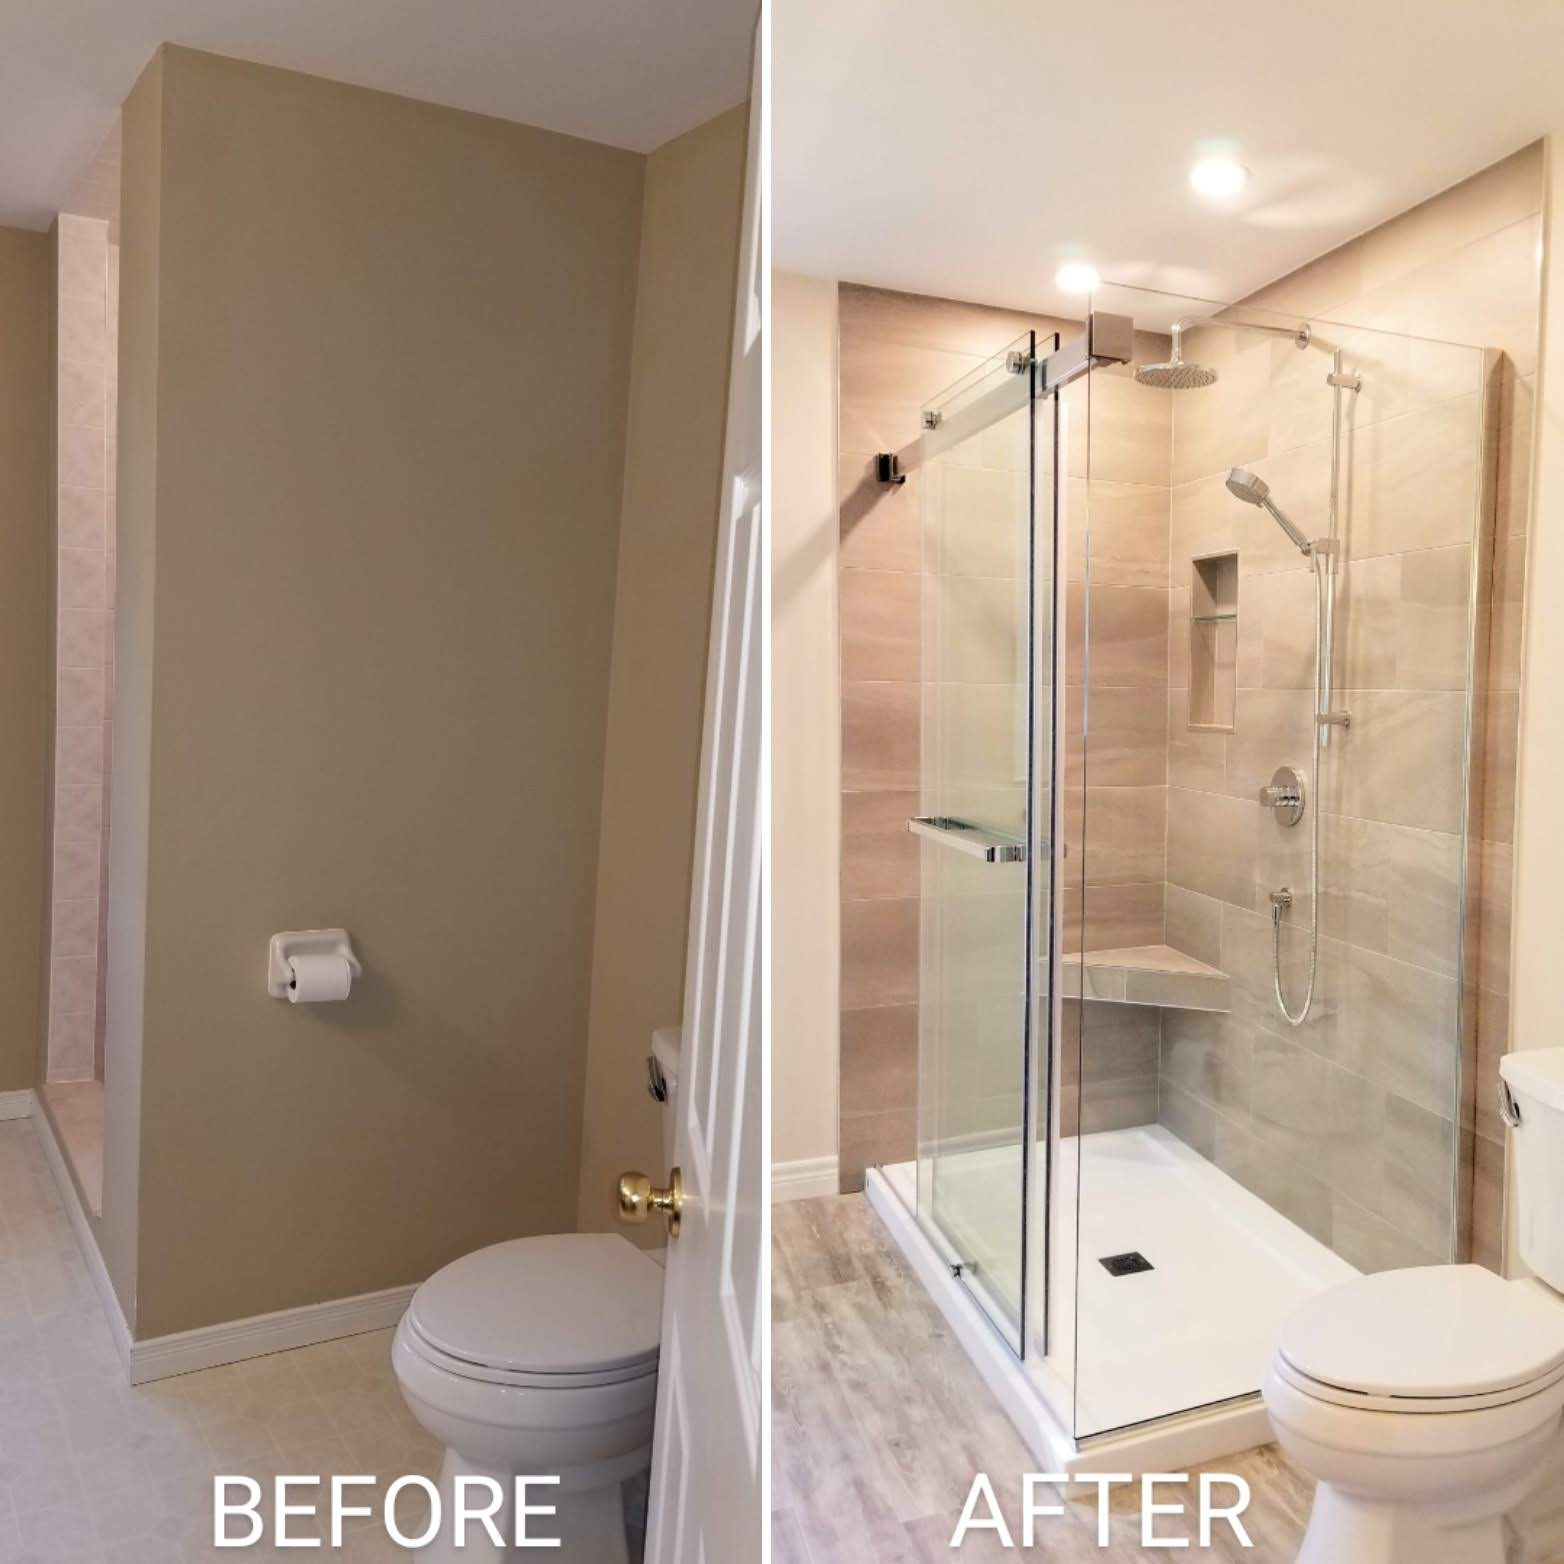 Before and after shower renovation by Germano Creative Interior Contracting Ltd.